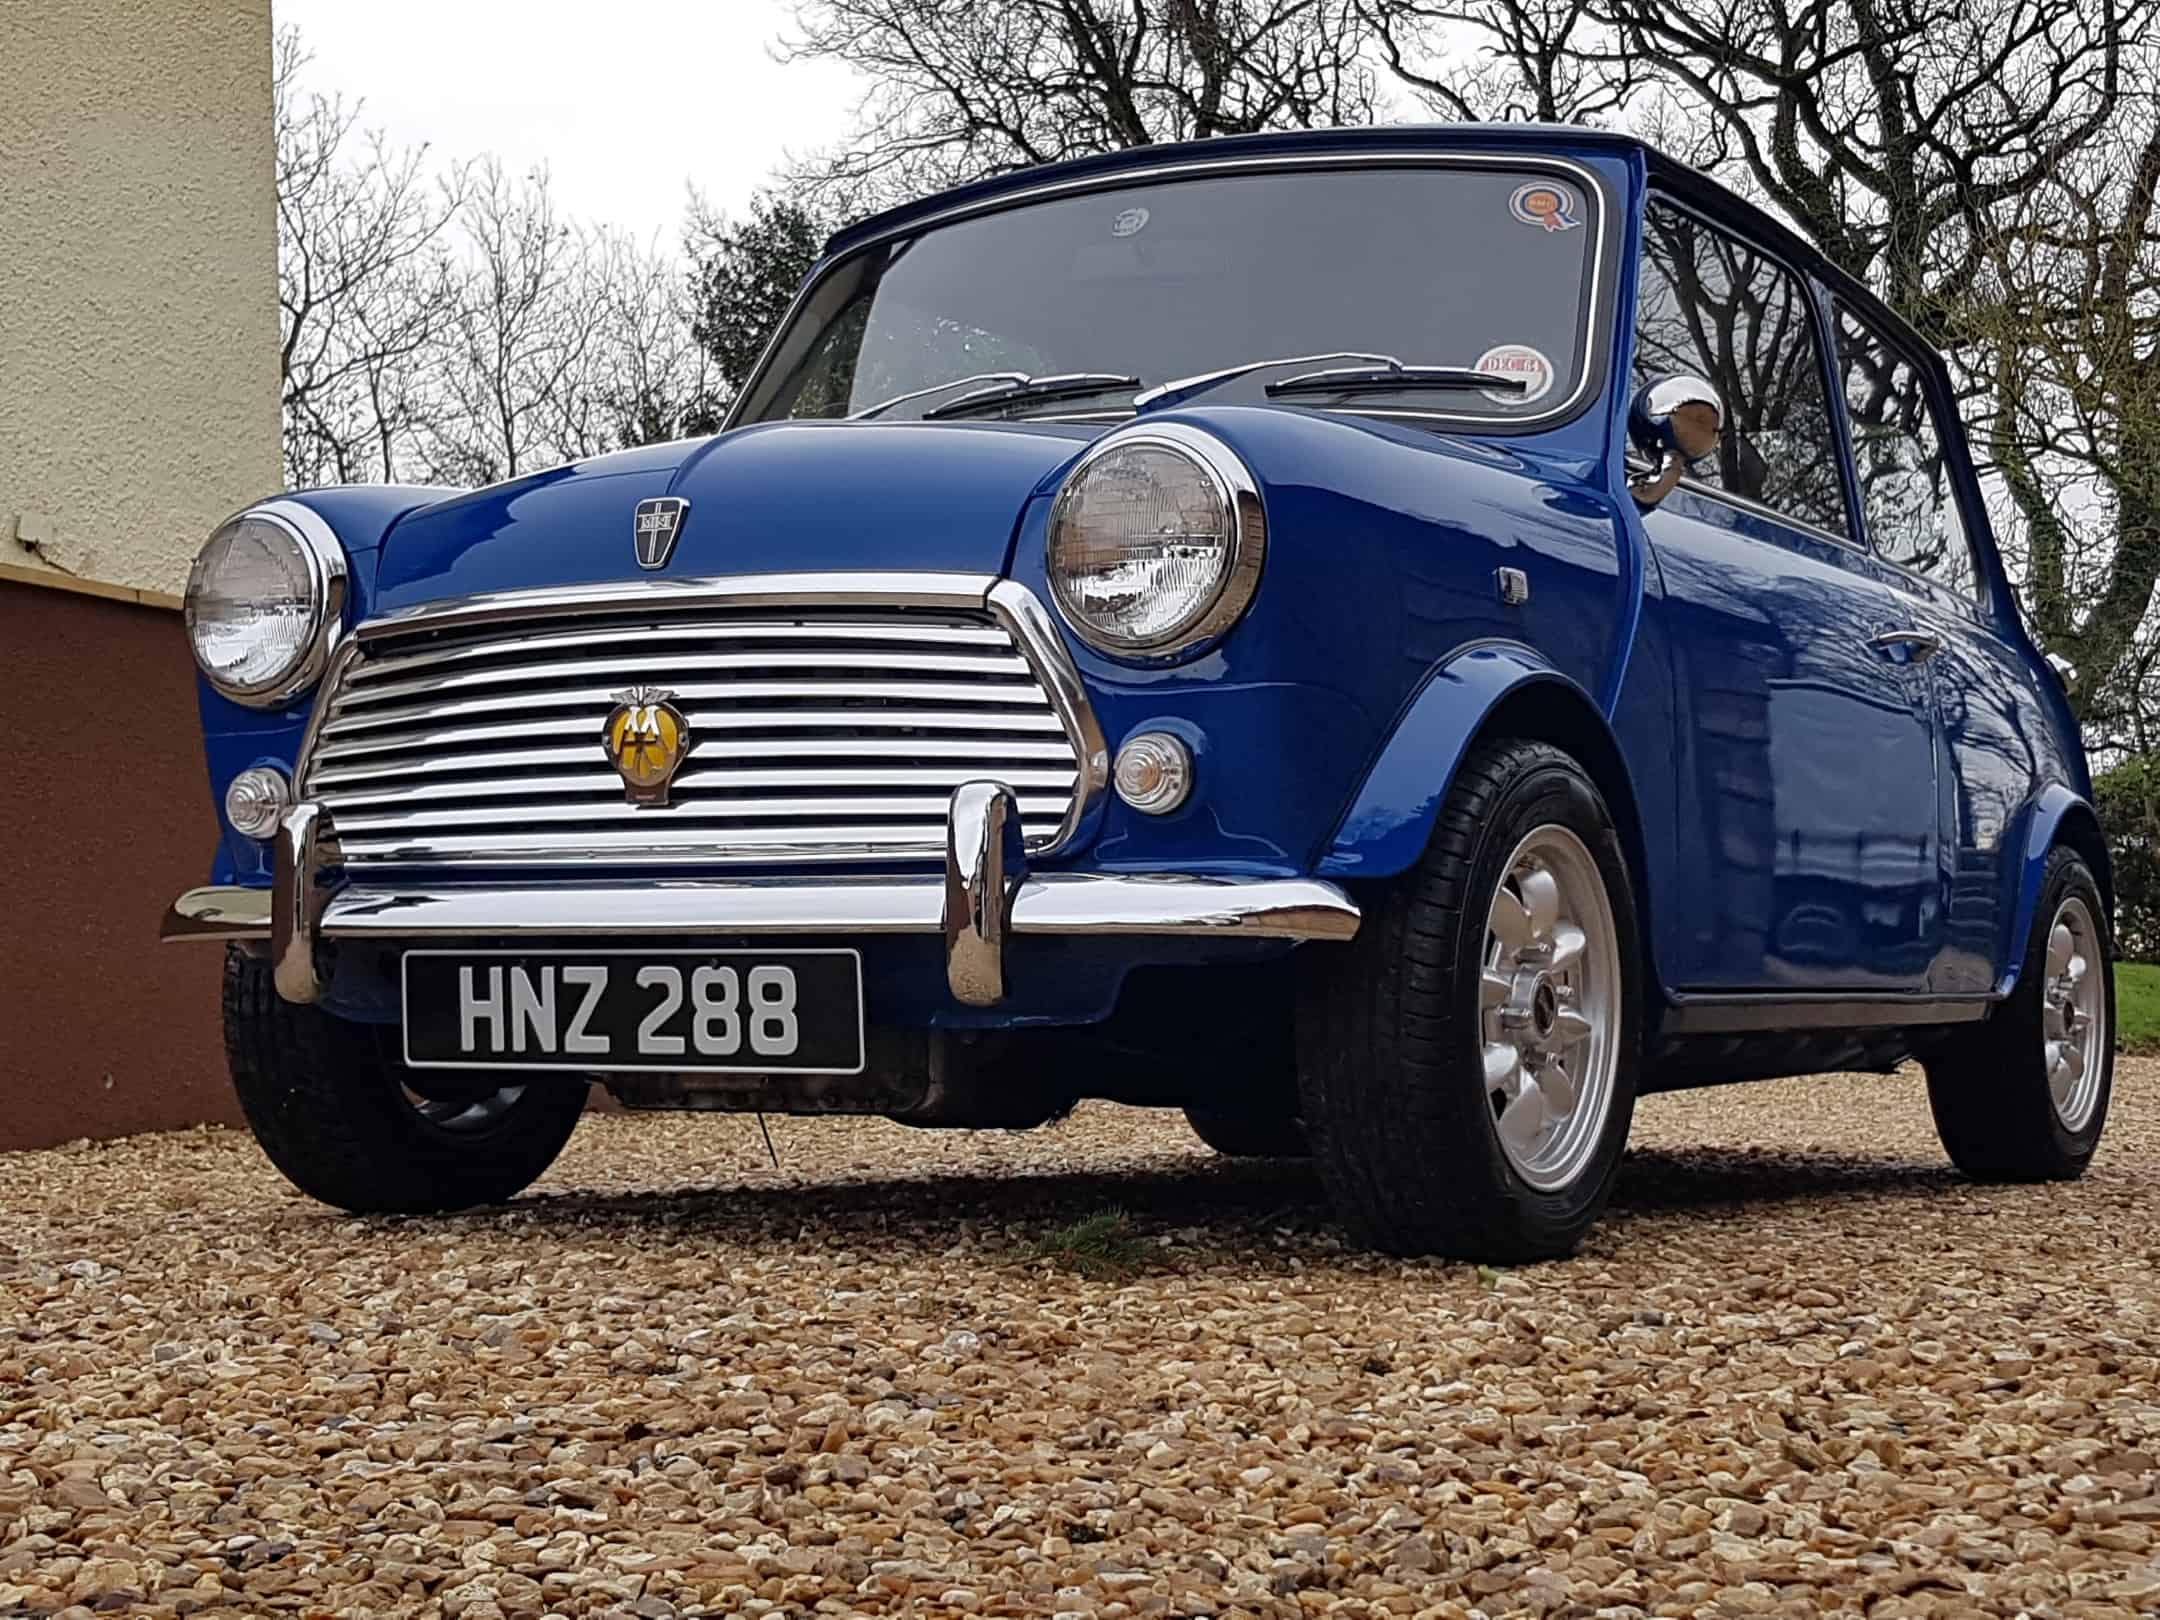 ** NOW SOLD  ** Stunning Rover Mini 1275 cc SPI Sprite Automatic